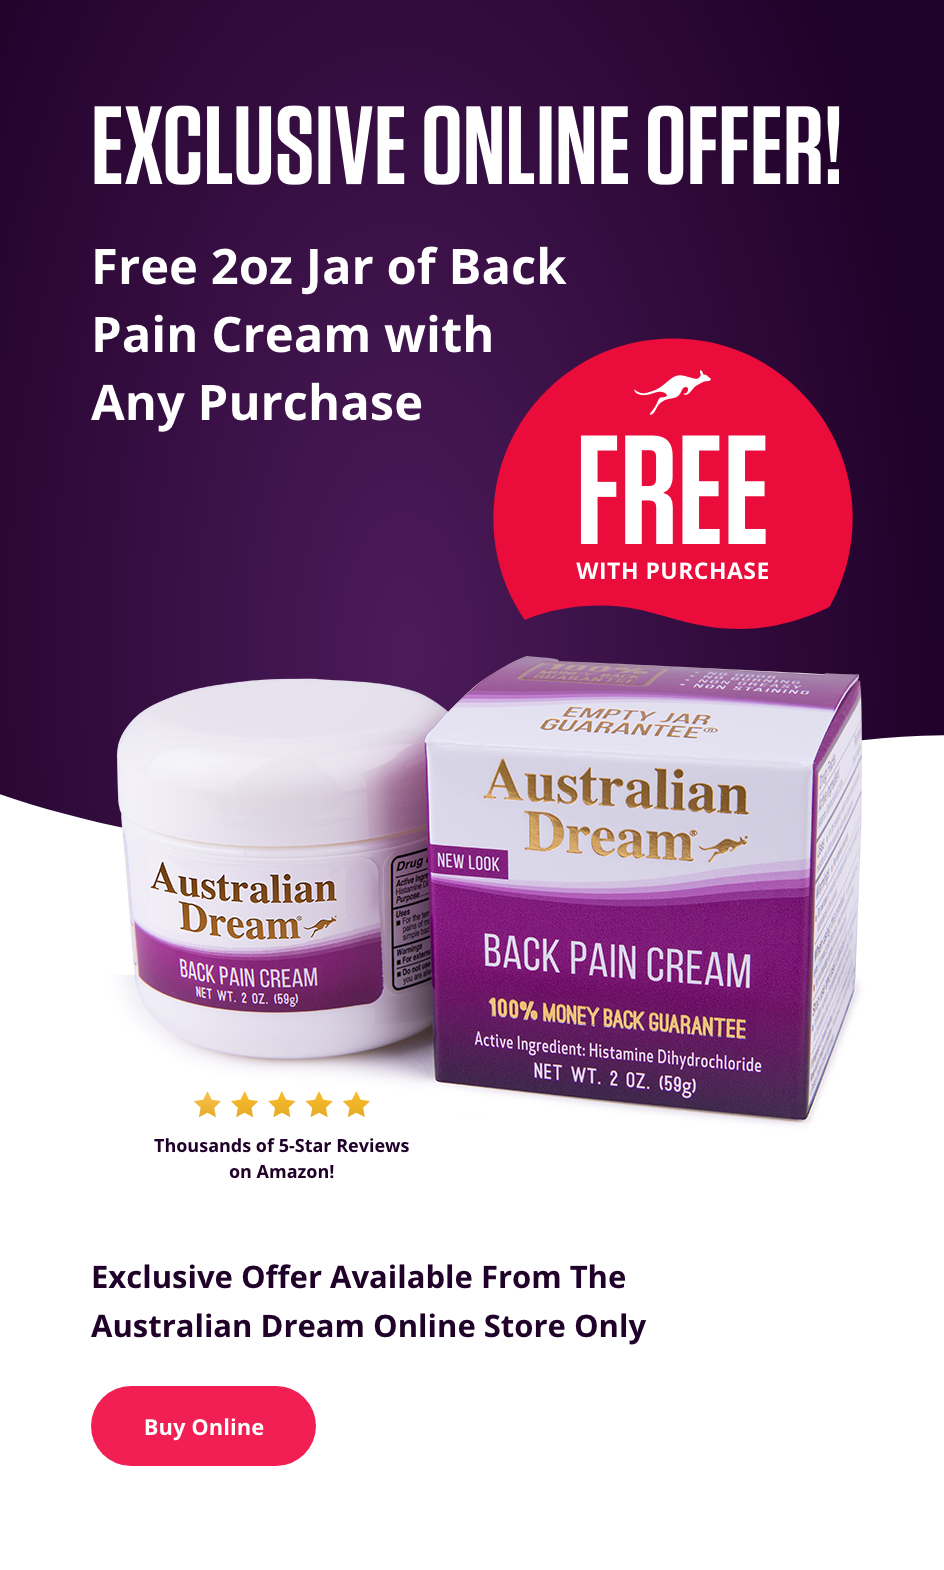 Free 2oz Jar of Back Pain Cream with Any Purchase